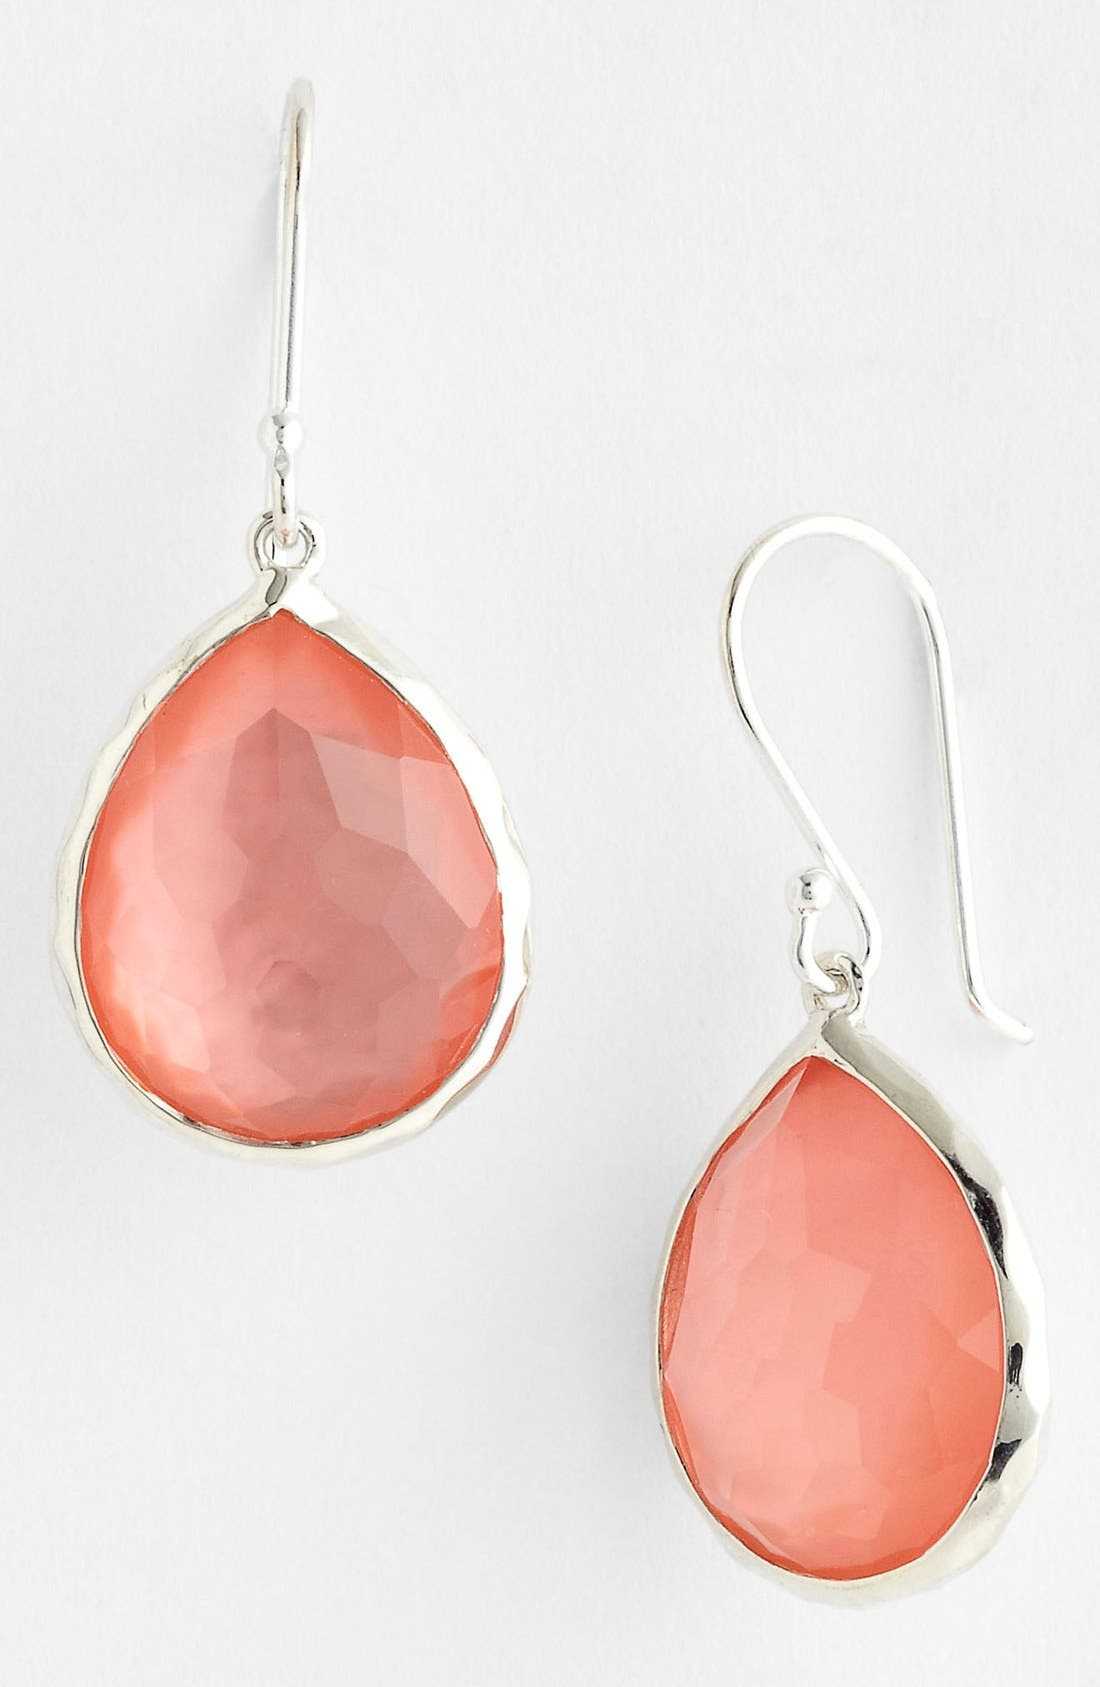 Alternate Image 1 Selected - Ippolita 'Wonderland' Teardrop Earrings (Online Only) (Nordstrom Exclusive)